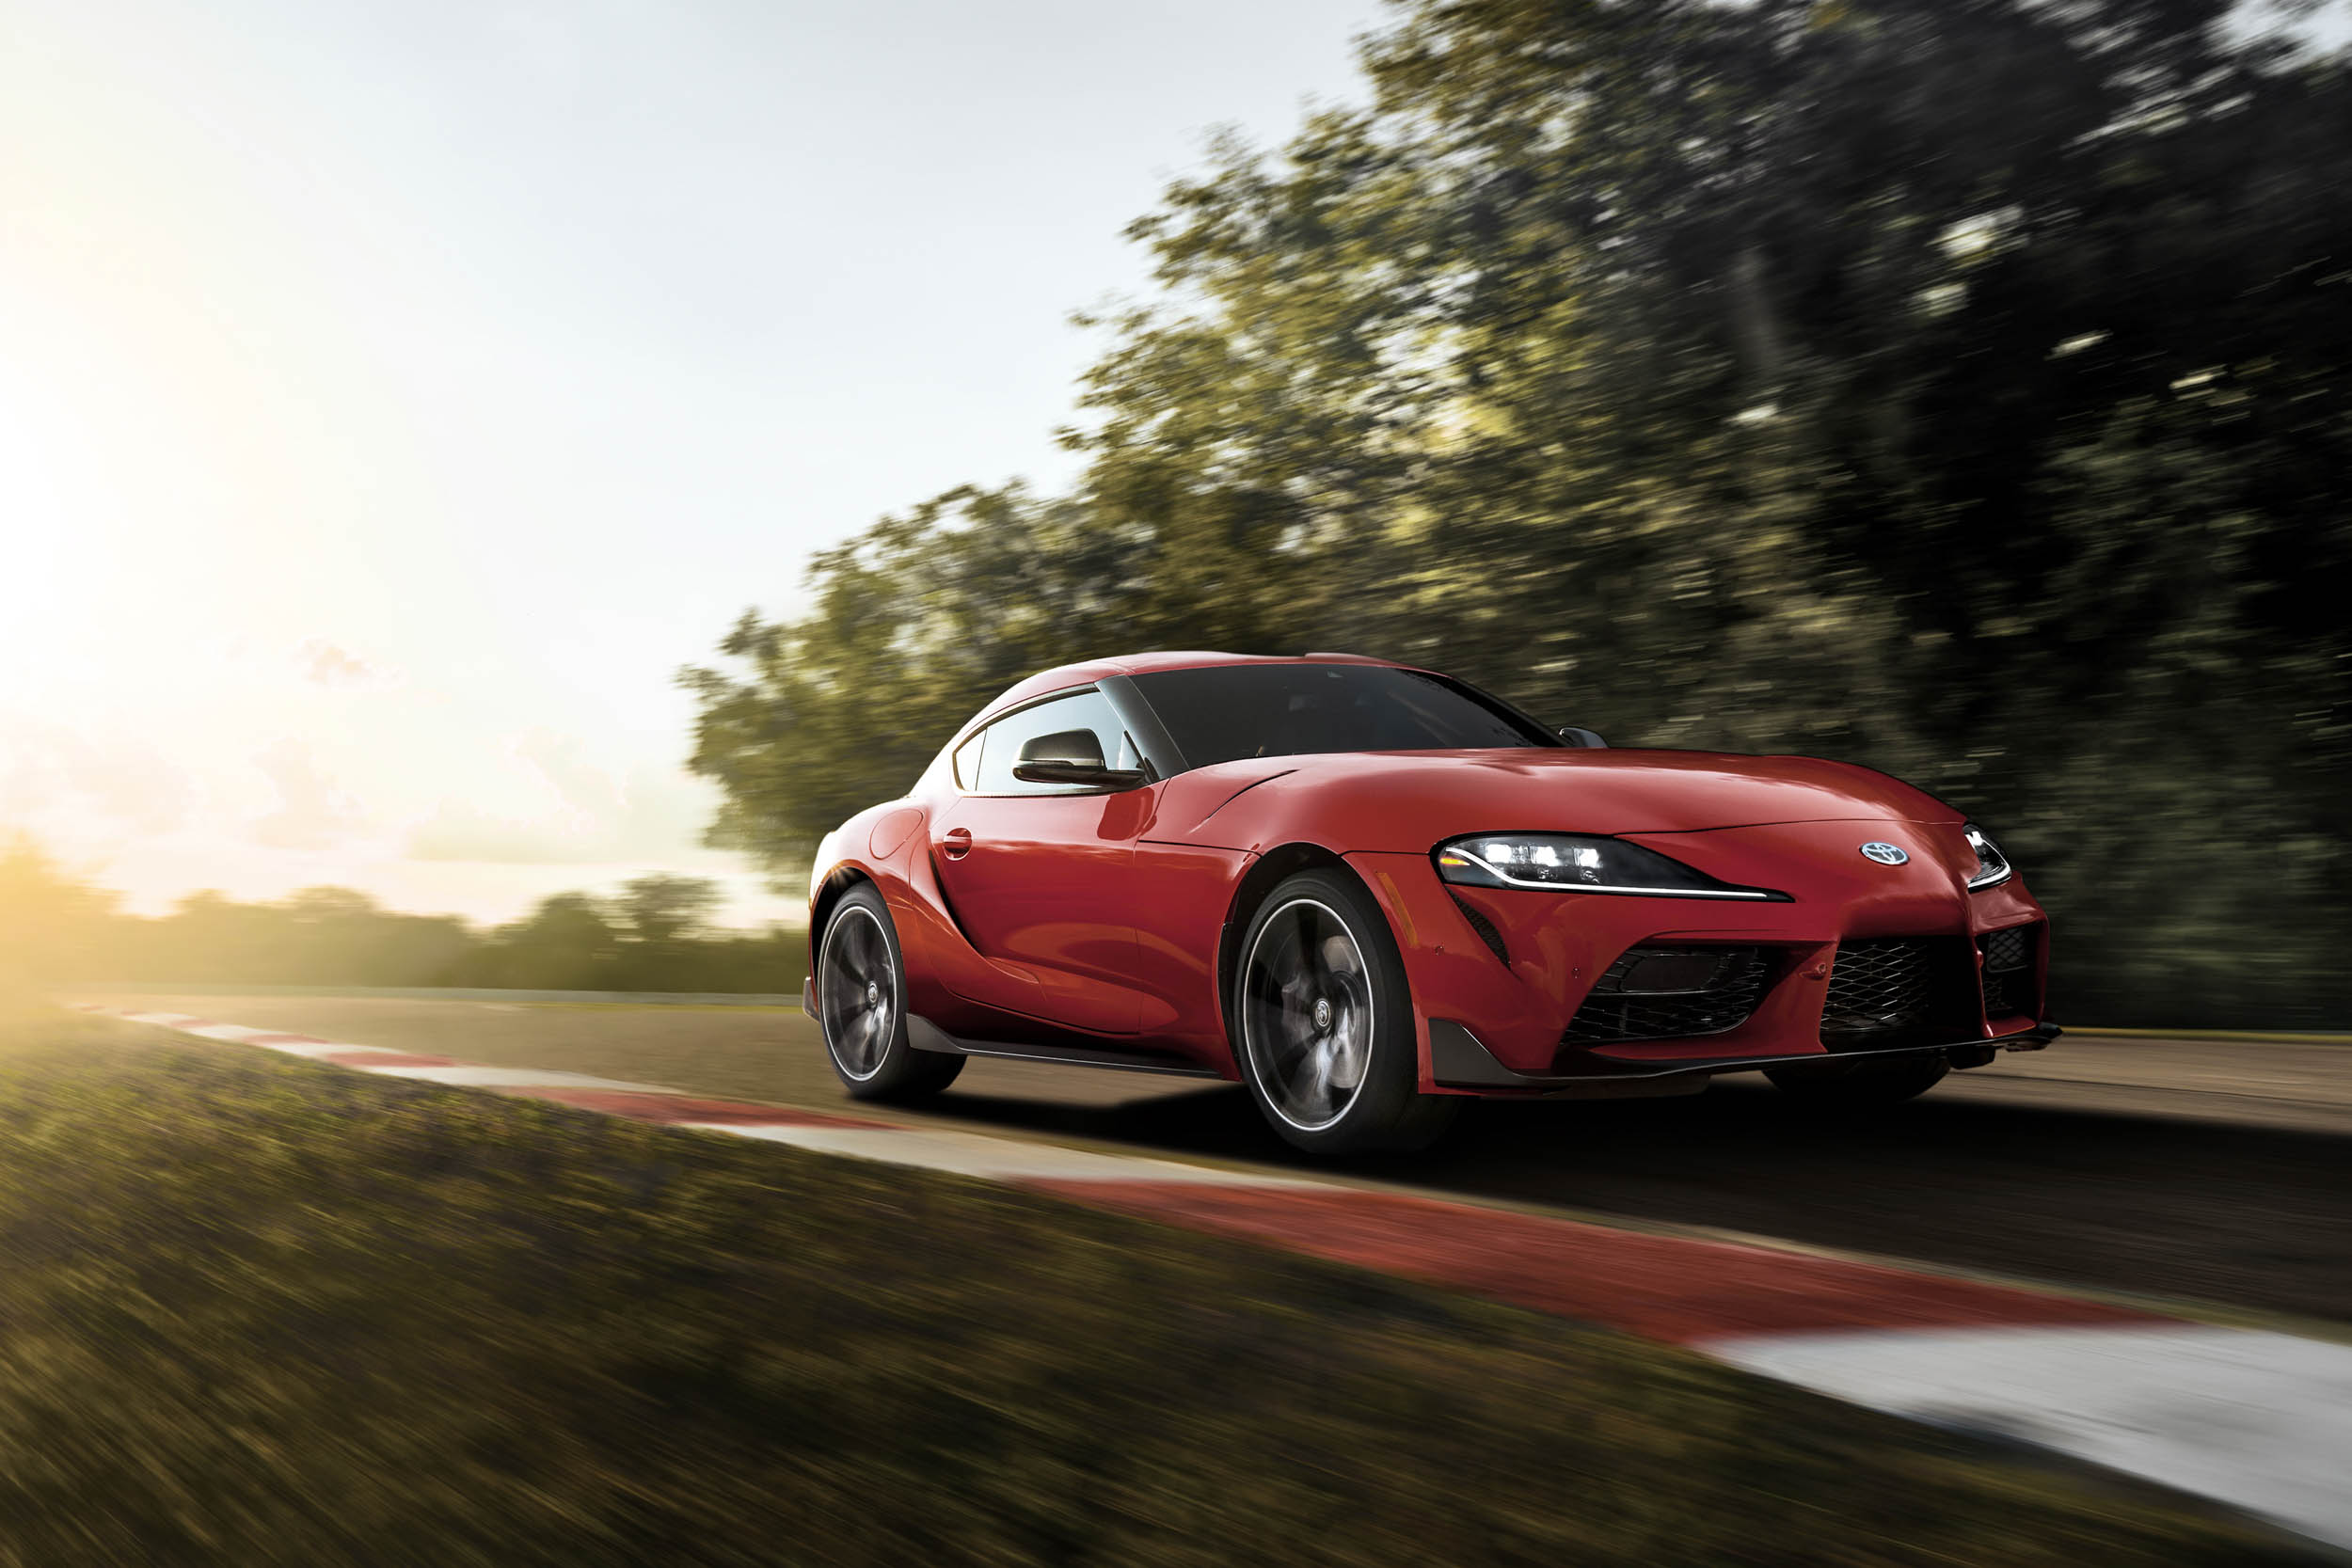 2020 Toyota Supra low front 3/4